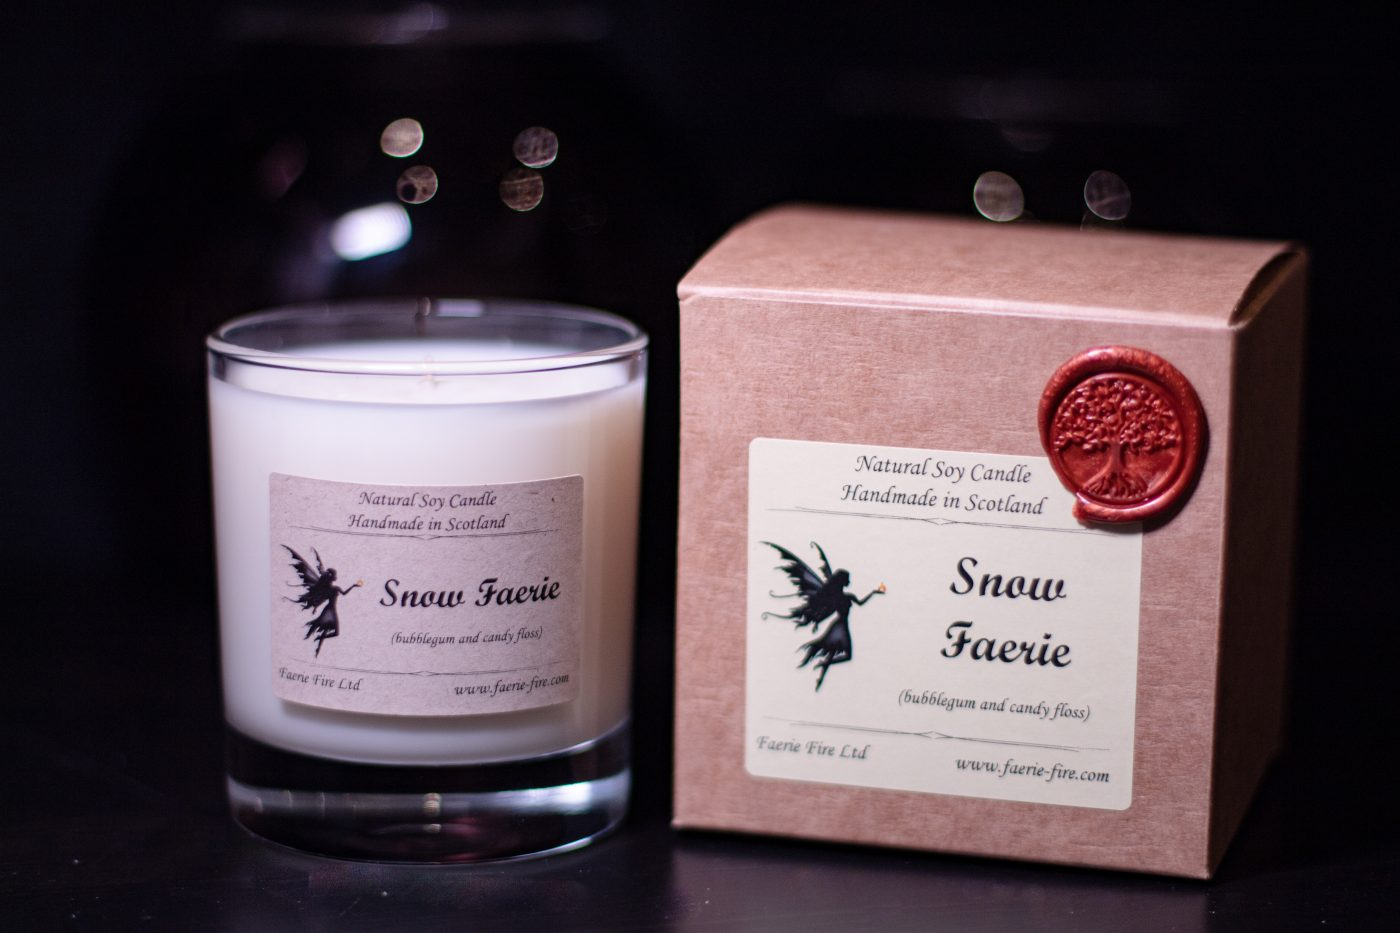 White snow faerie soy candle in a clear glass jar beside a gift box against a dark background smelling like pear drops